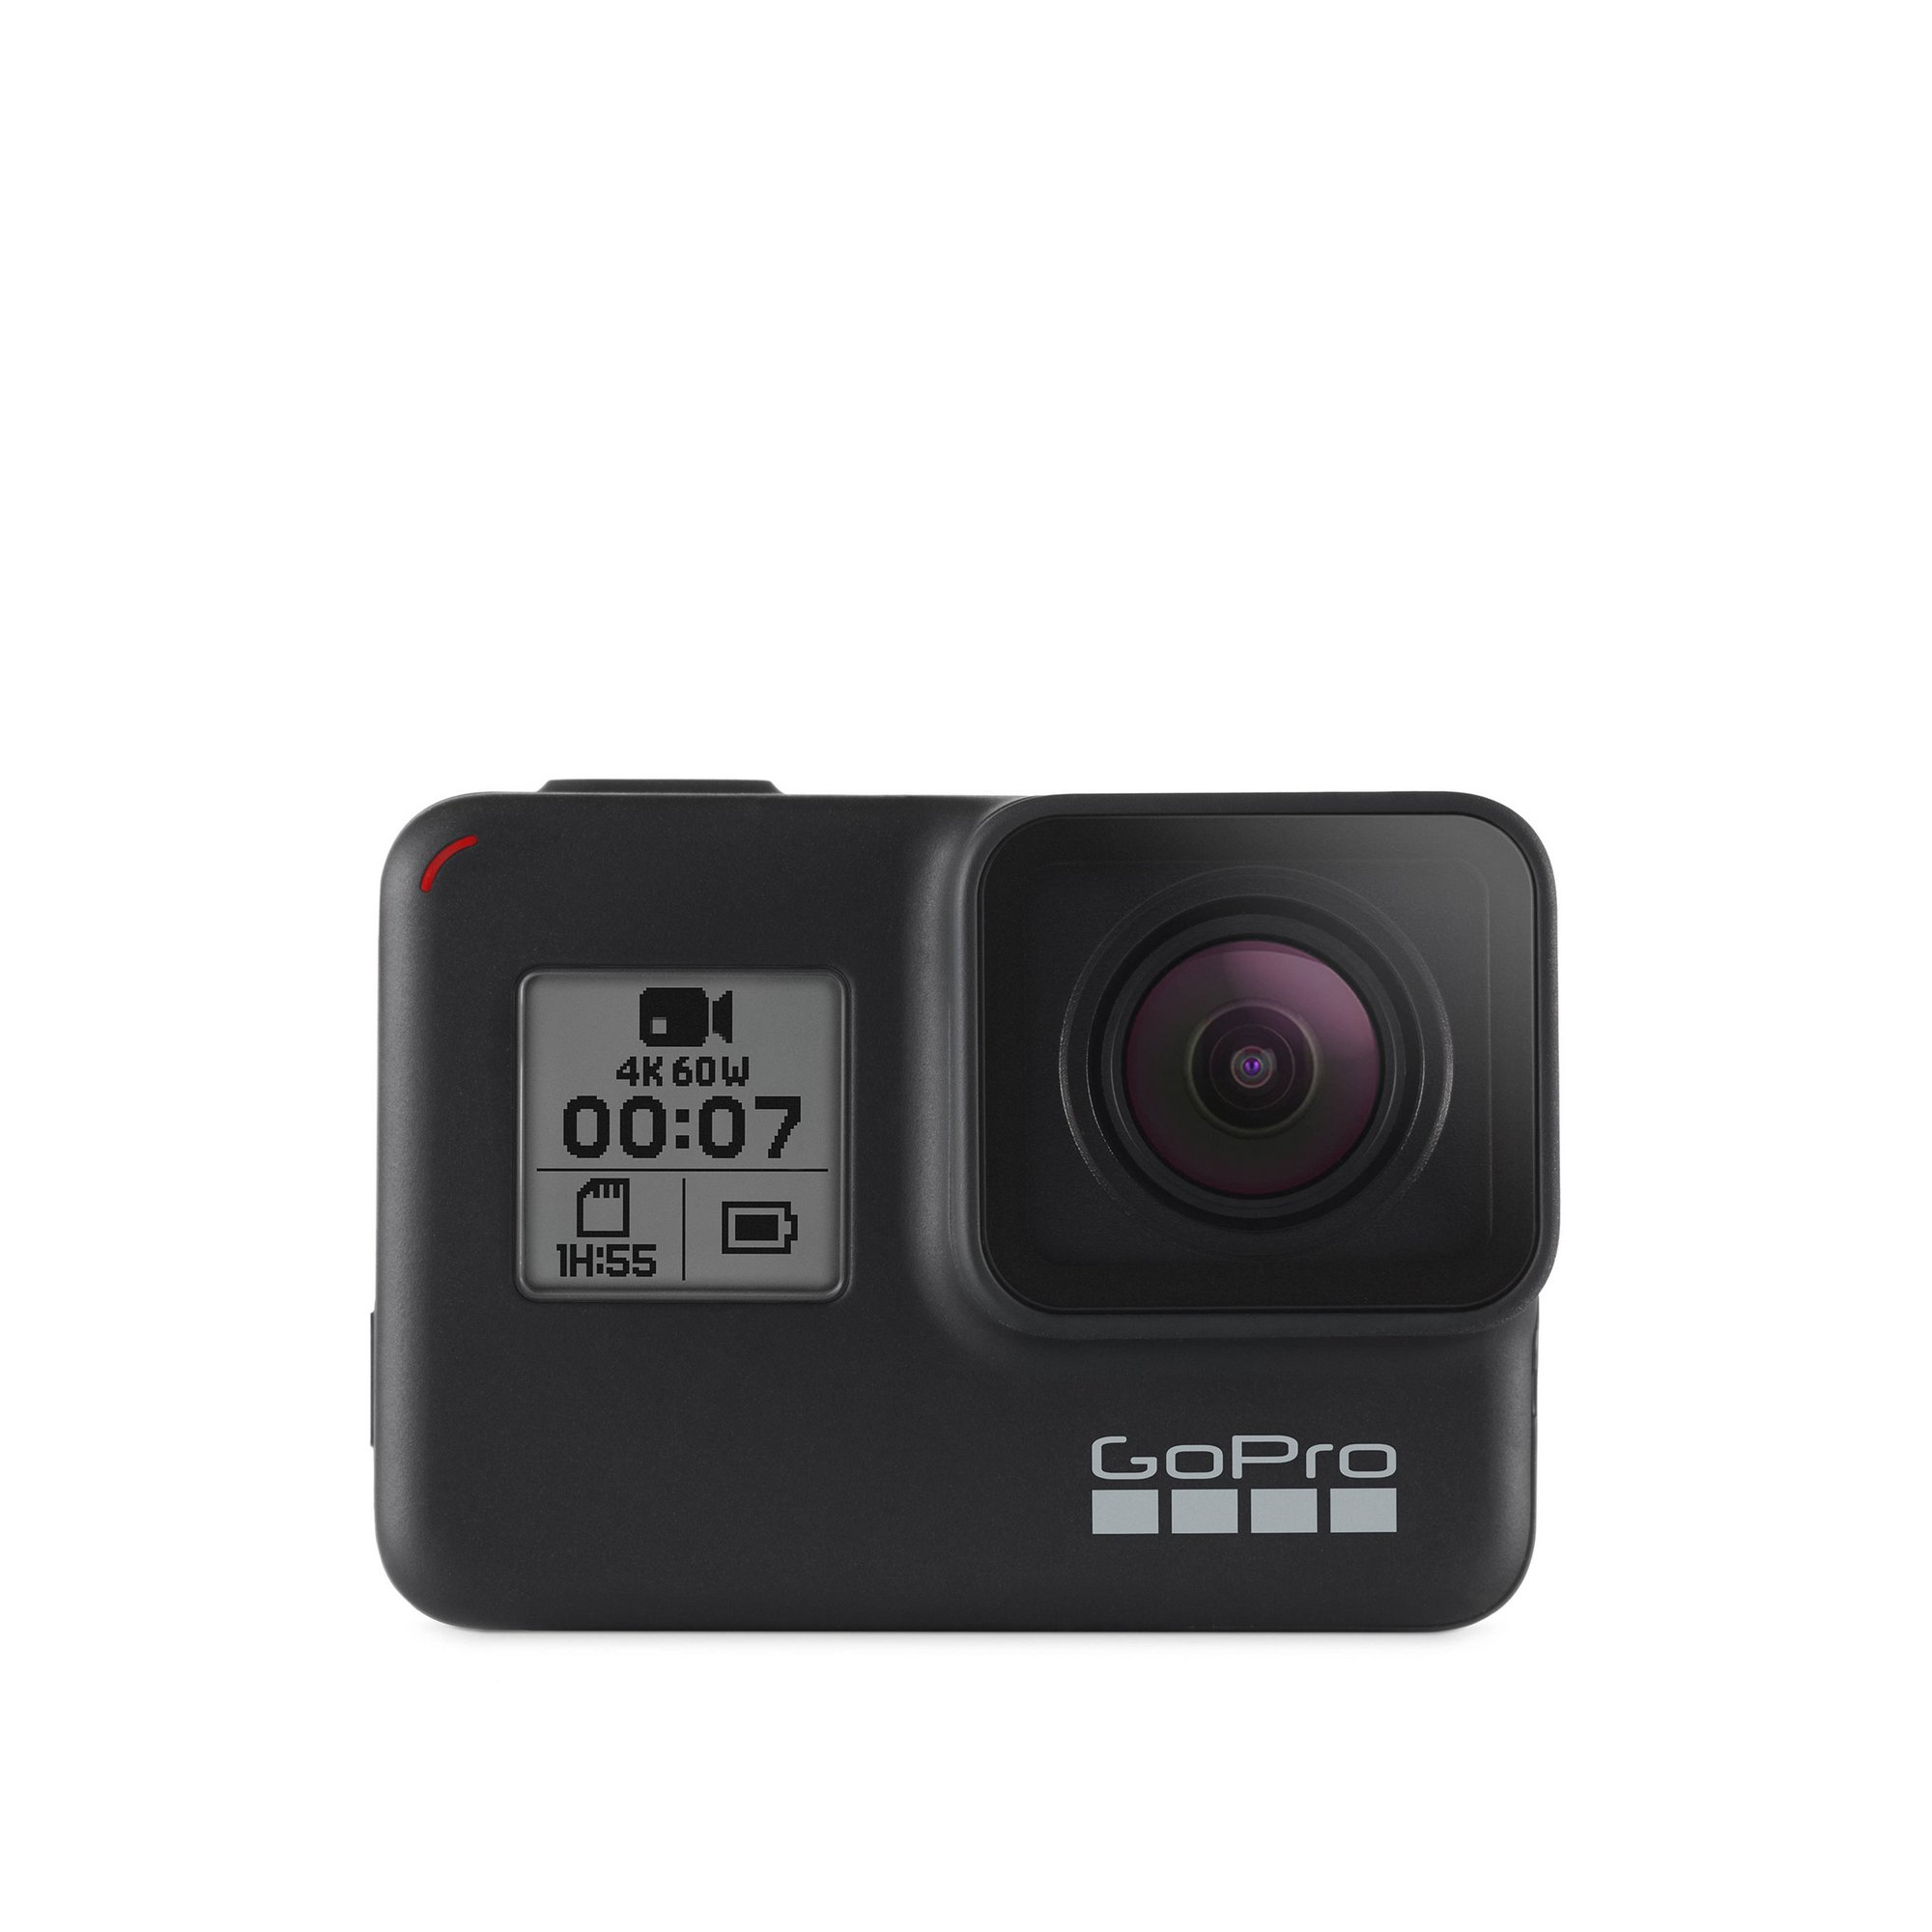 Image of Go Pro Hero 7 Black Action Cam